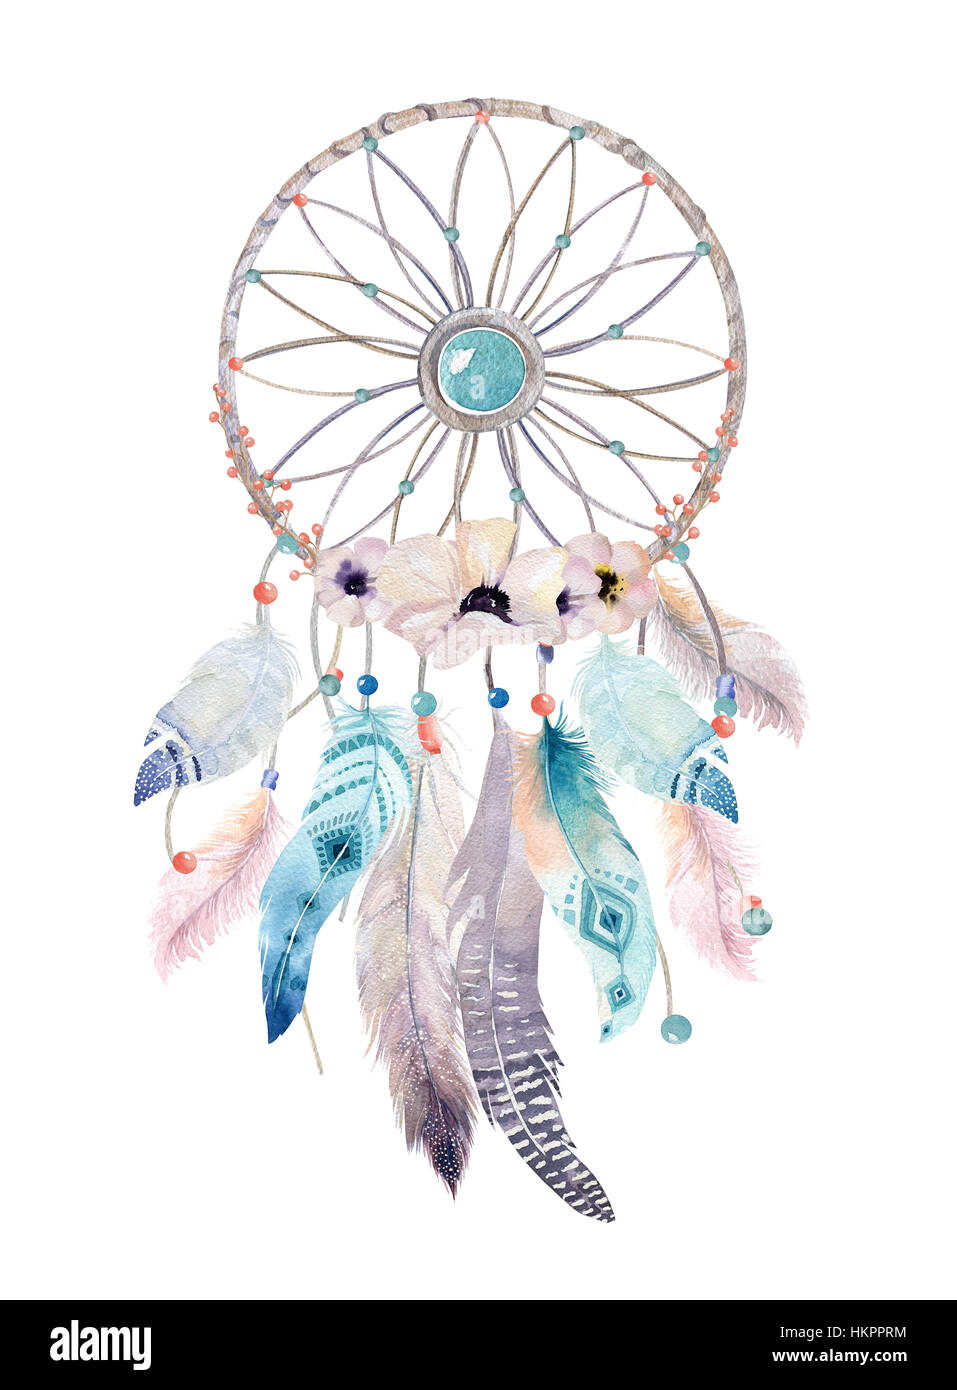 Isolated Watercolor decoration bohemian dreamcatcher. Boho feath - Stock Image